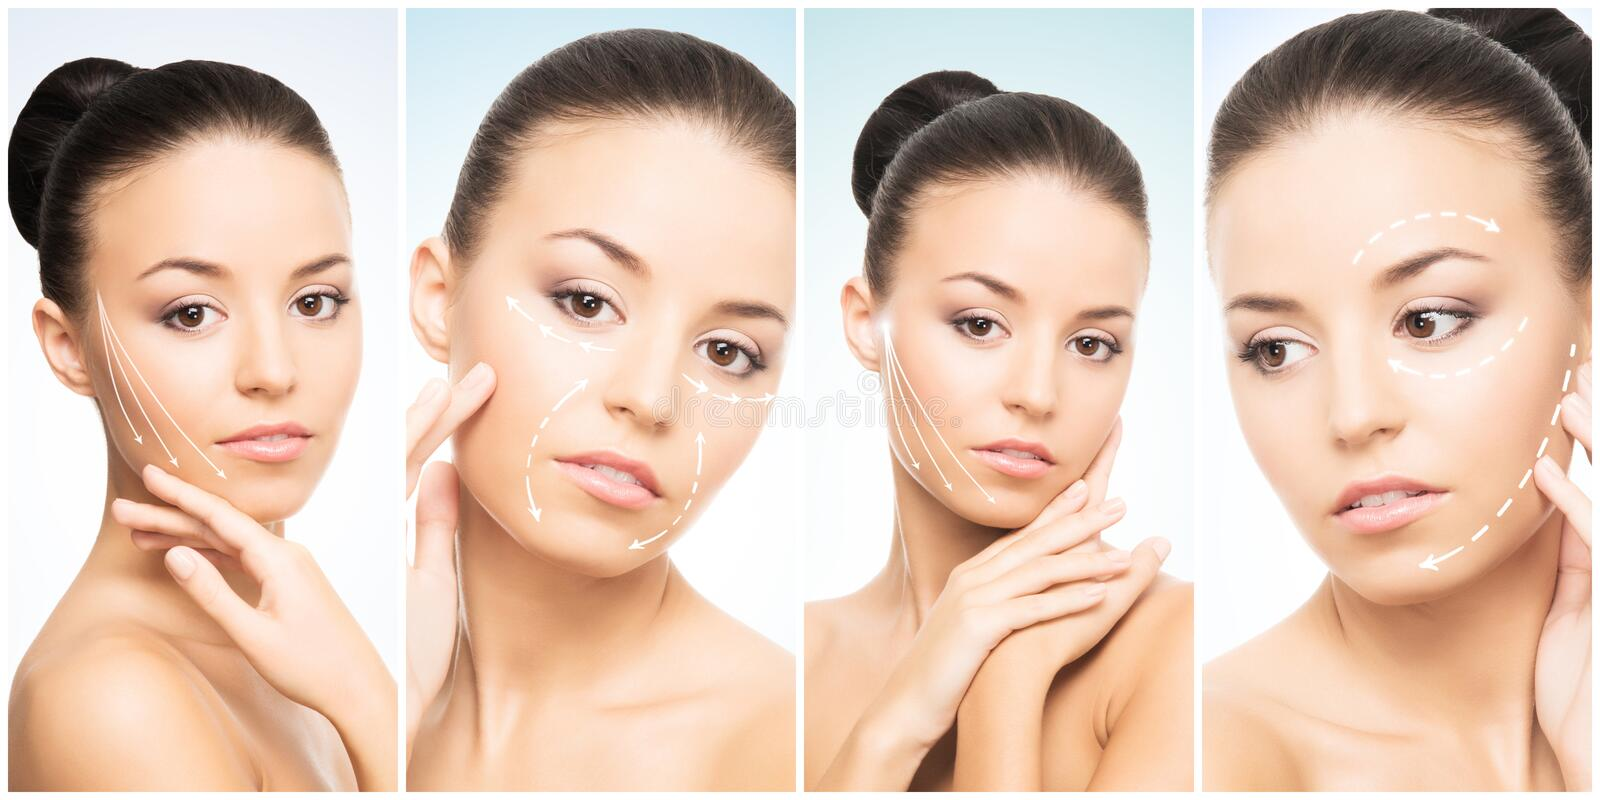 Beautiful face of young and healthy girl in collage collection. Plastic surgery, skin care, cosmetics and face lifting stock photos